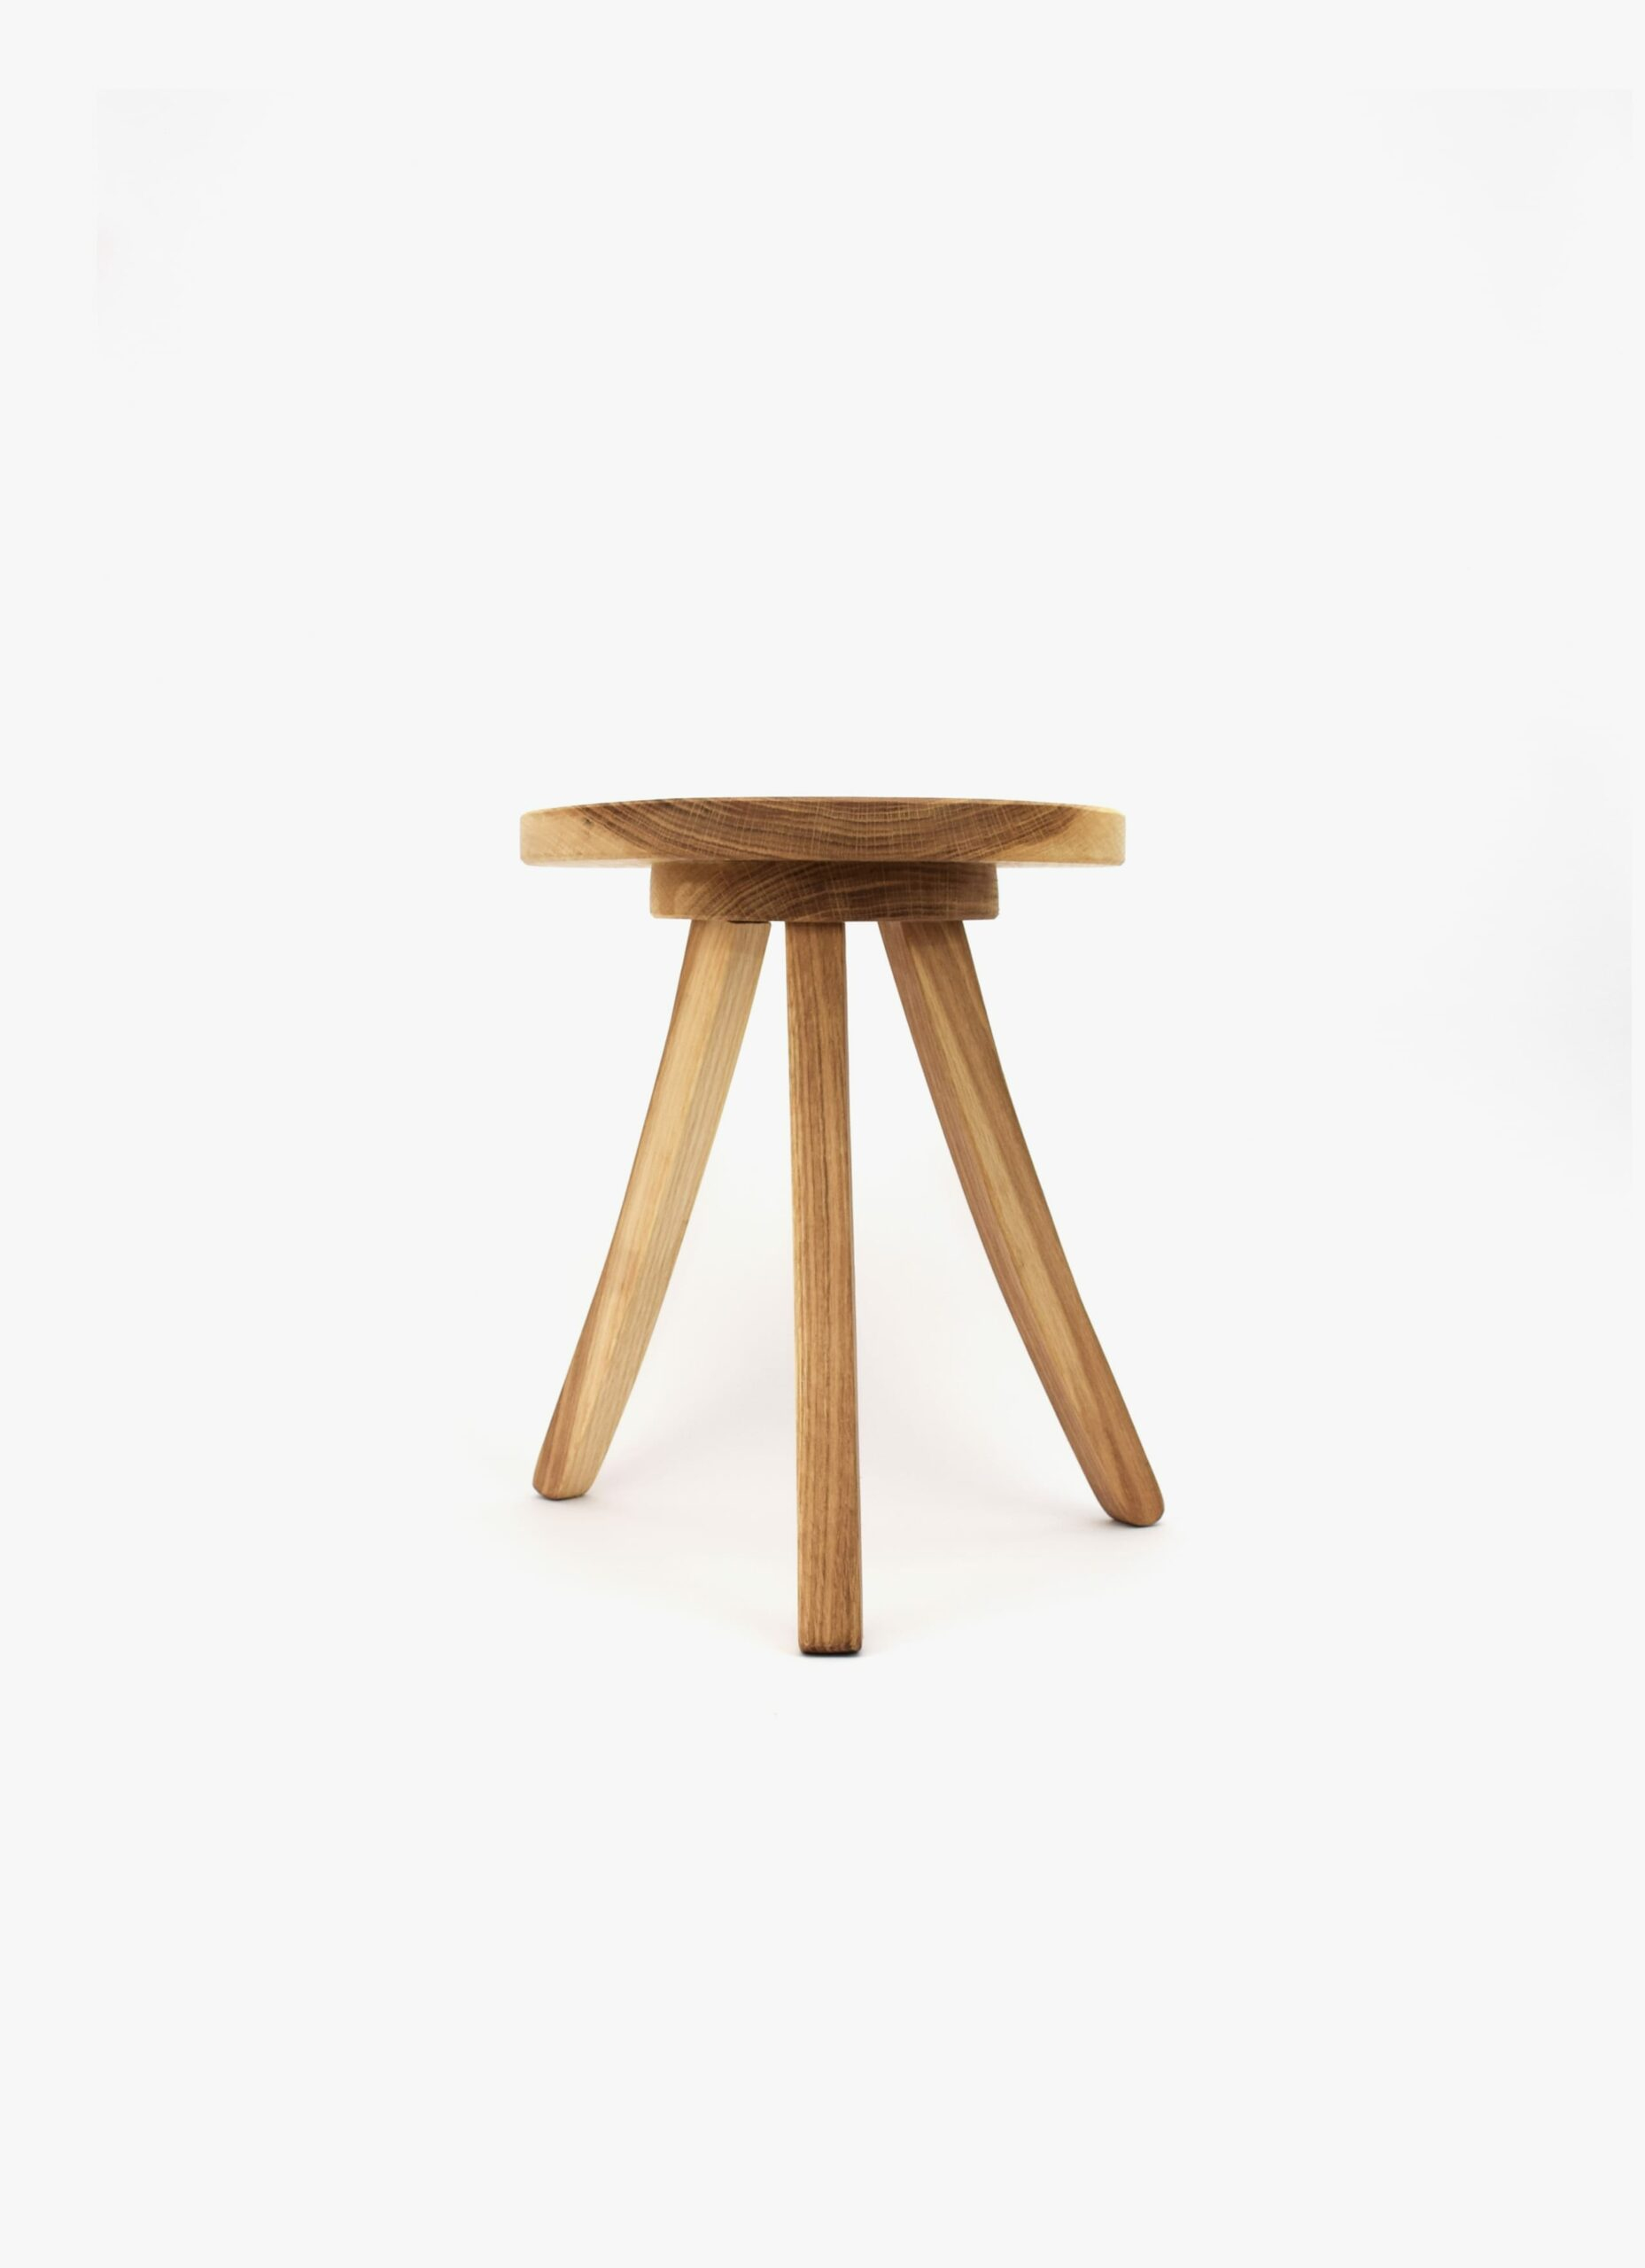 Vinko Nino Jaeger - Stool No. 2 - Scheibe - Item No. 3